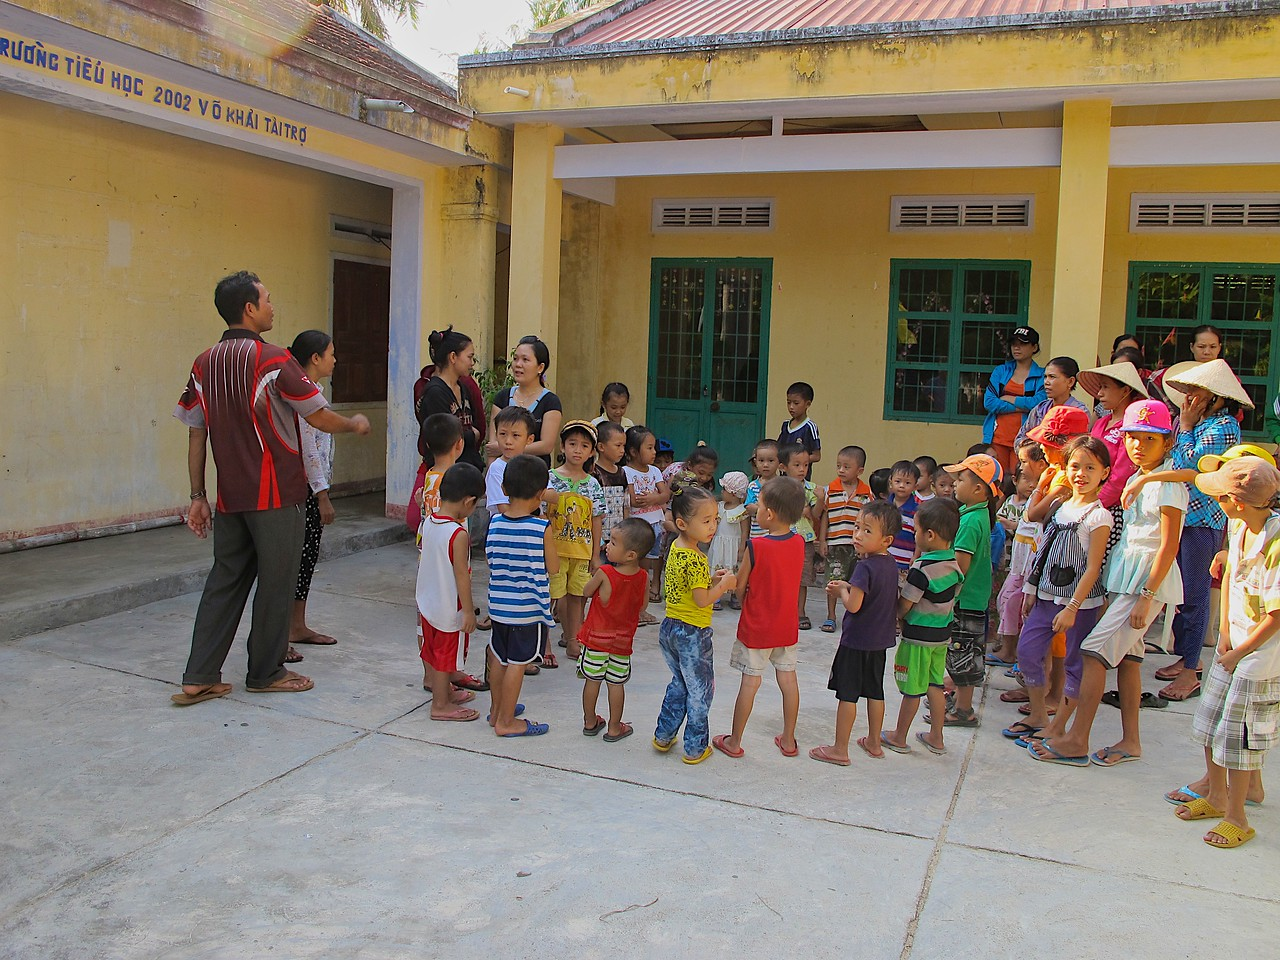 We visited two schools in the nearby village of Hoa Loi, one was for kids in grades K through 3...